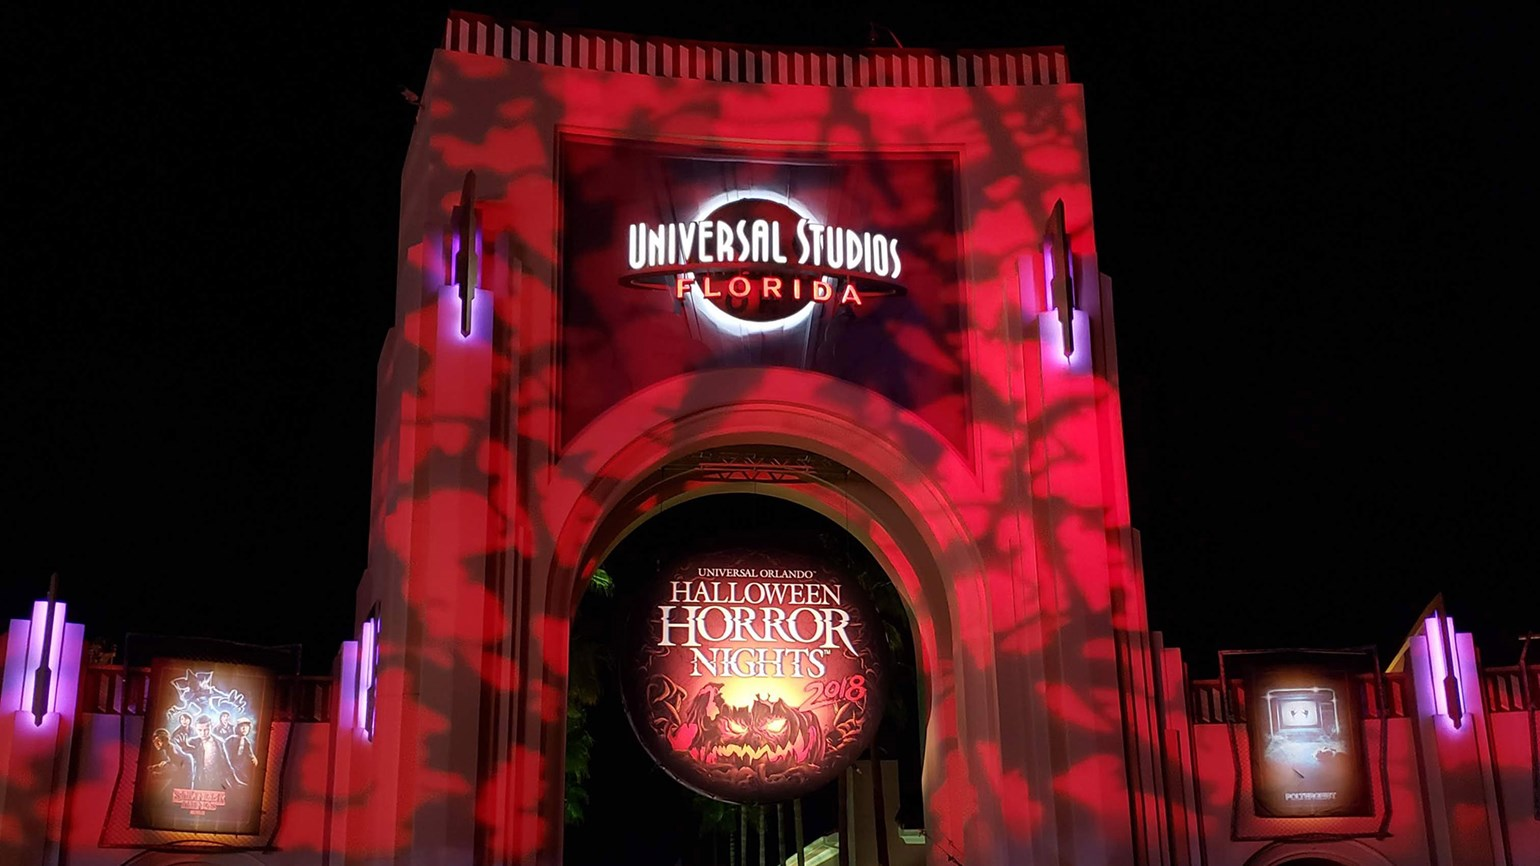 Going behind the screams on an R.I.P. Tour at Universal's Halloween Horror Nights